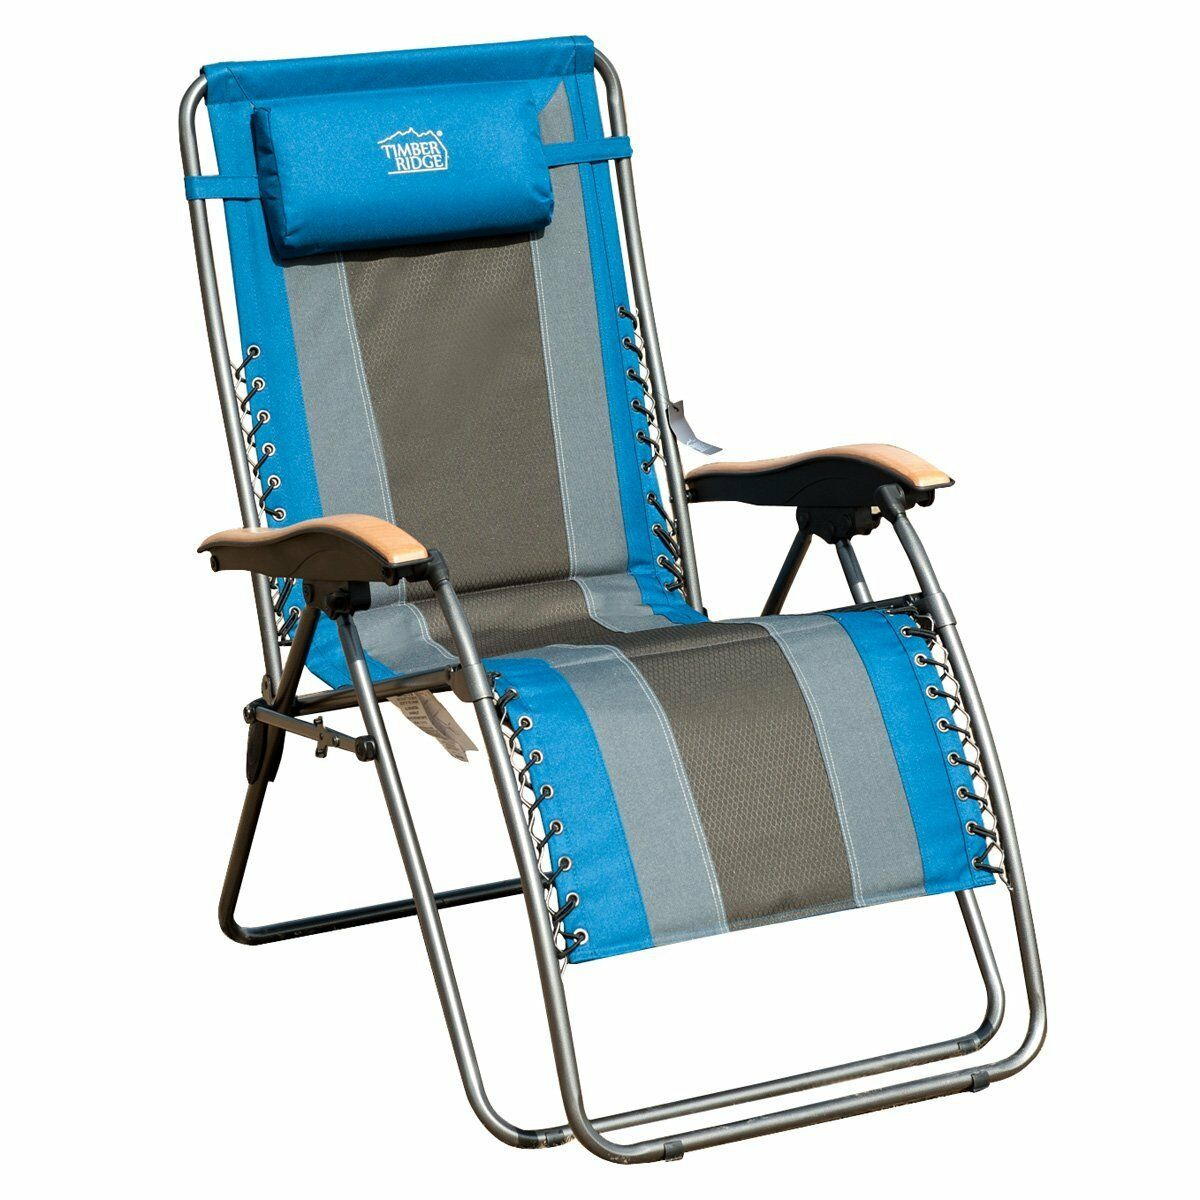 Oversized Zero Gravity Chair With Canopy Oversized Xl Padded Zero Gravity Chair Folding Recliner